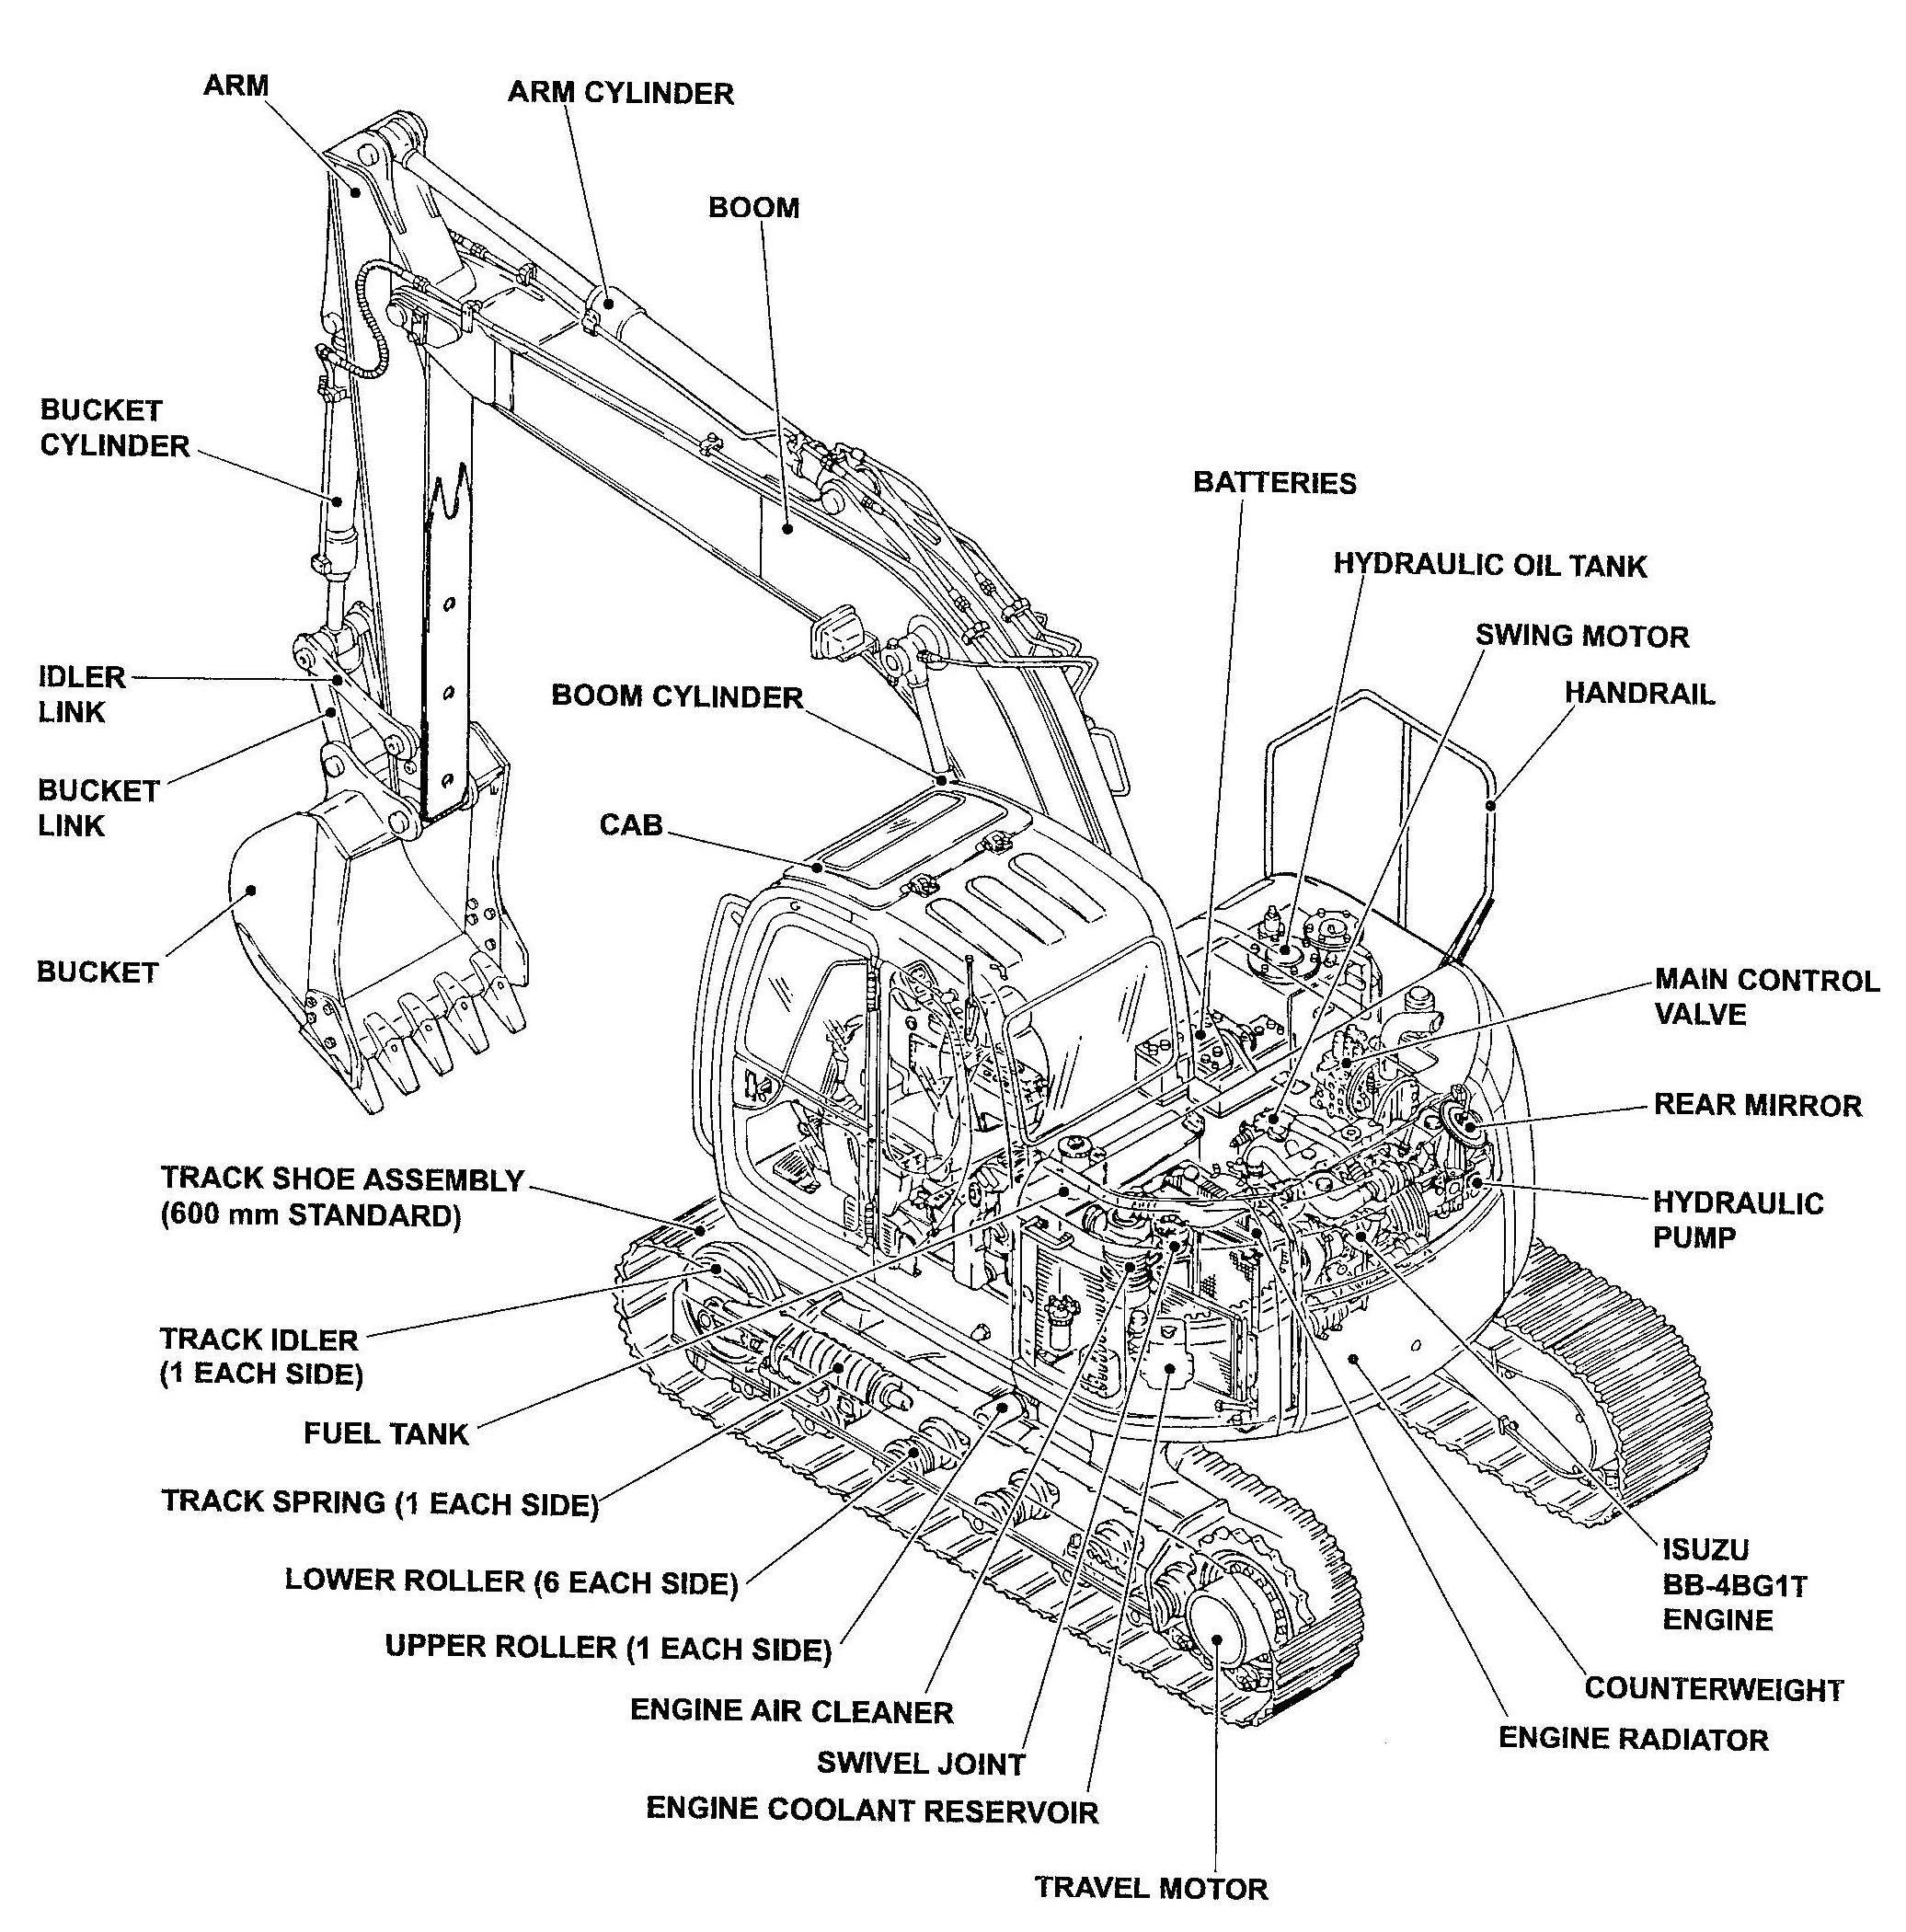 medium resolution of image result for crawler excavator diagram volvo diagram cars and motorcycles craft projects